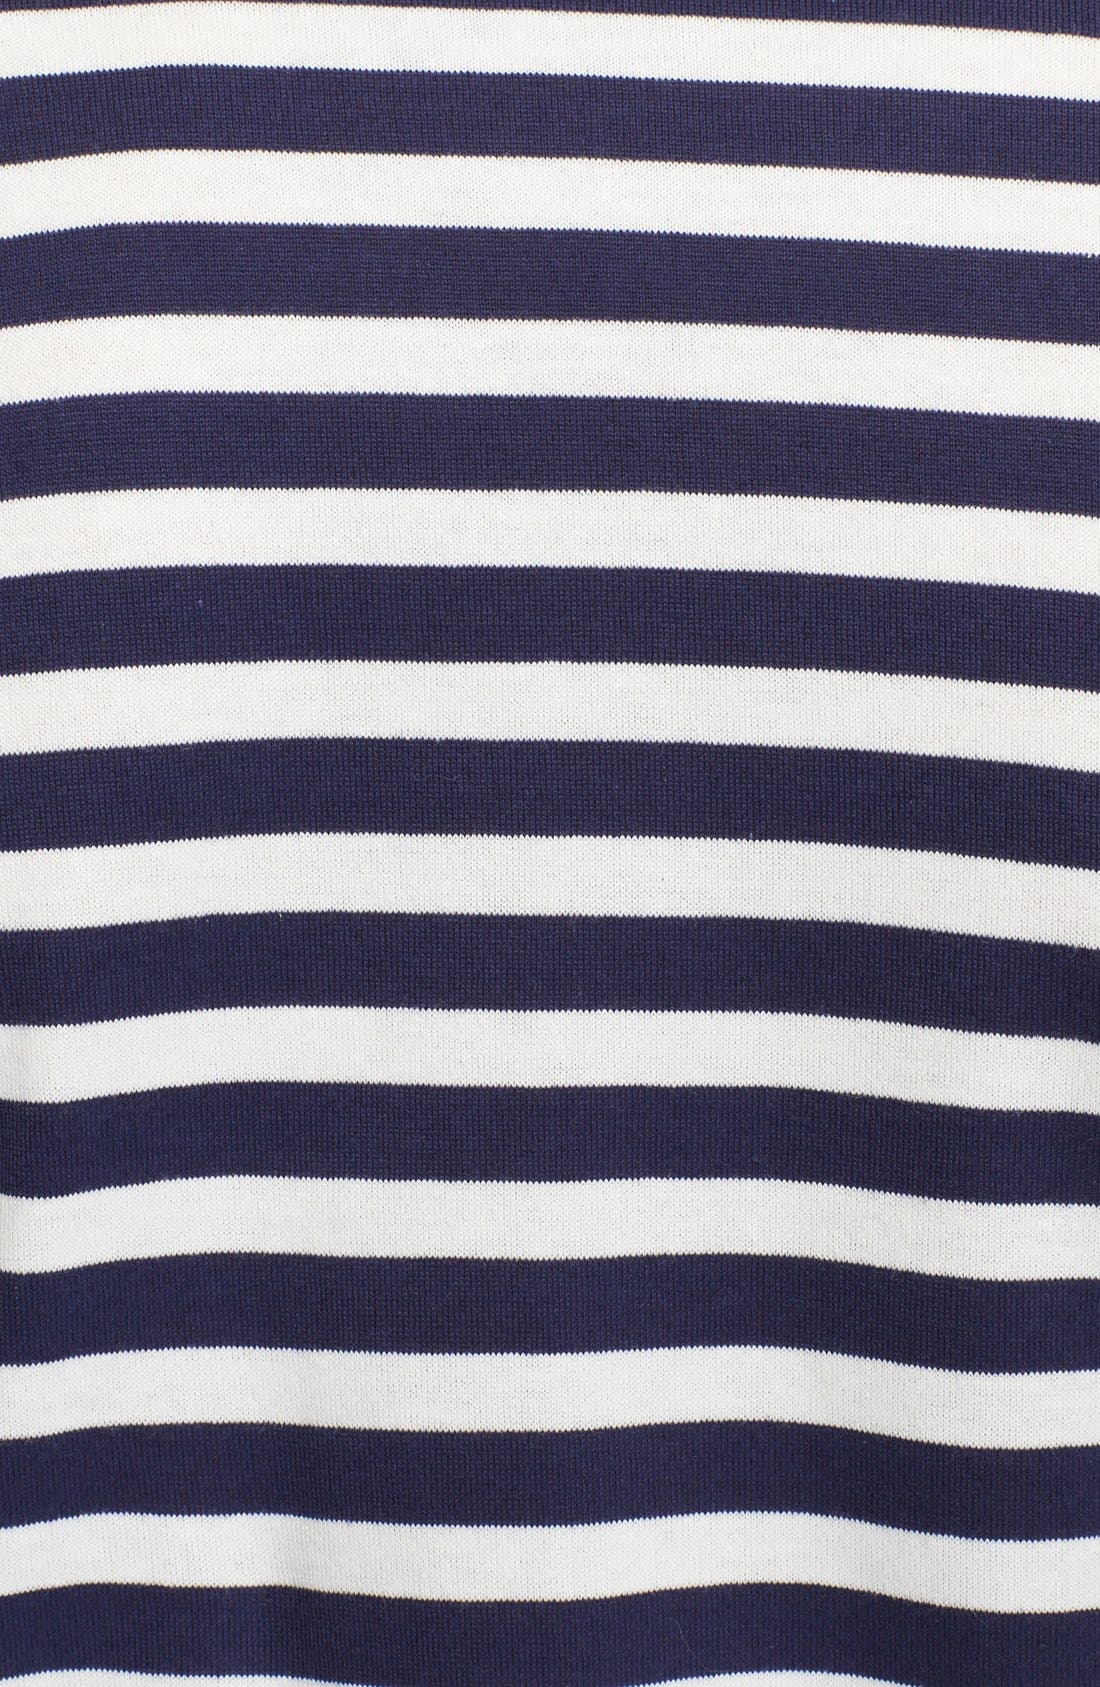 Stripe T-Shirt,                             Alternate thumbnail 2, color,                             410